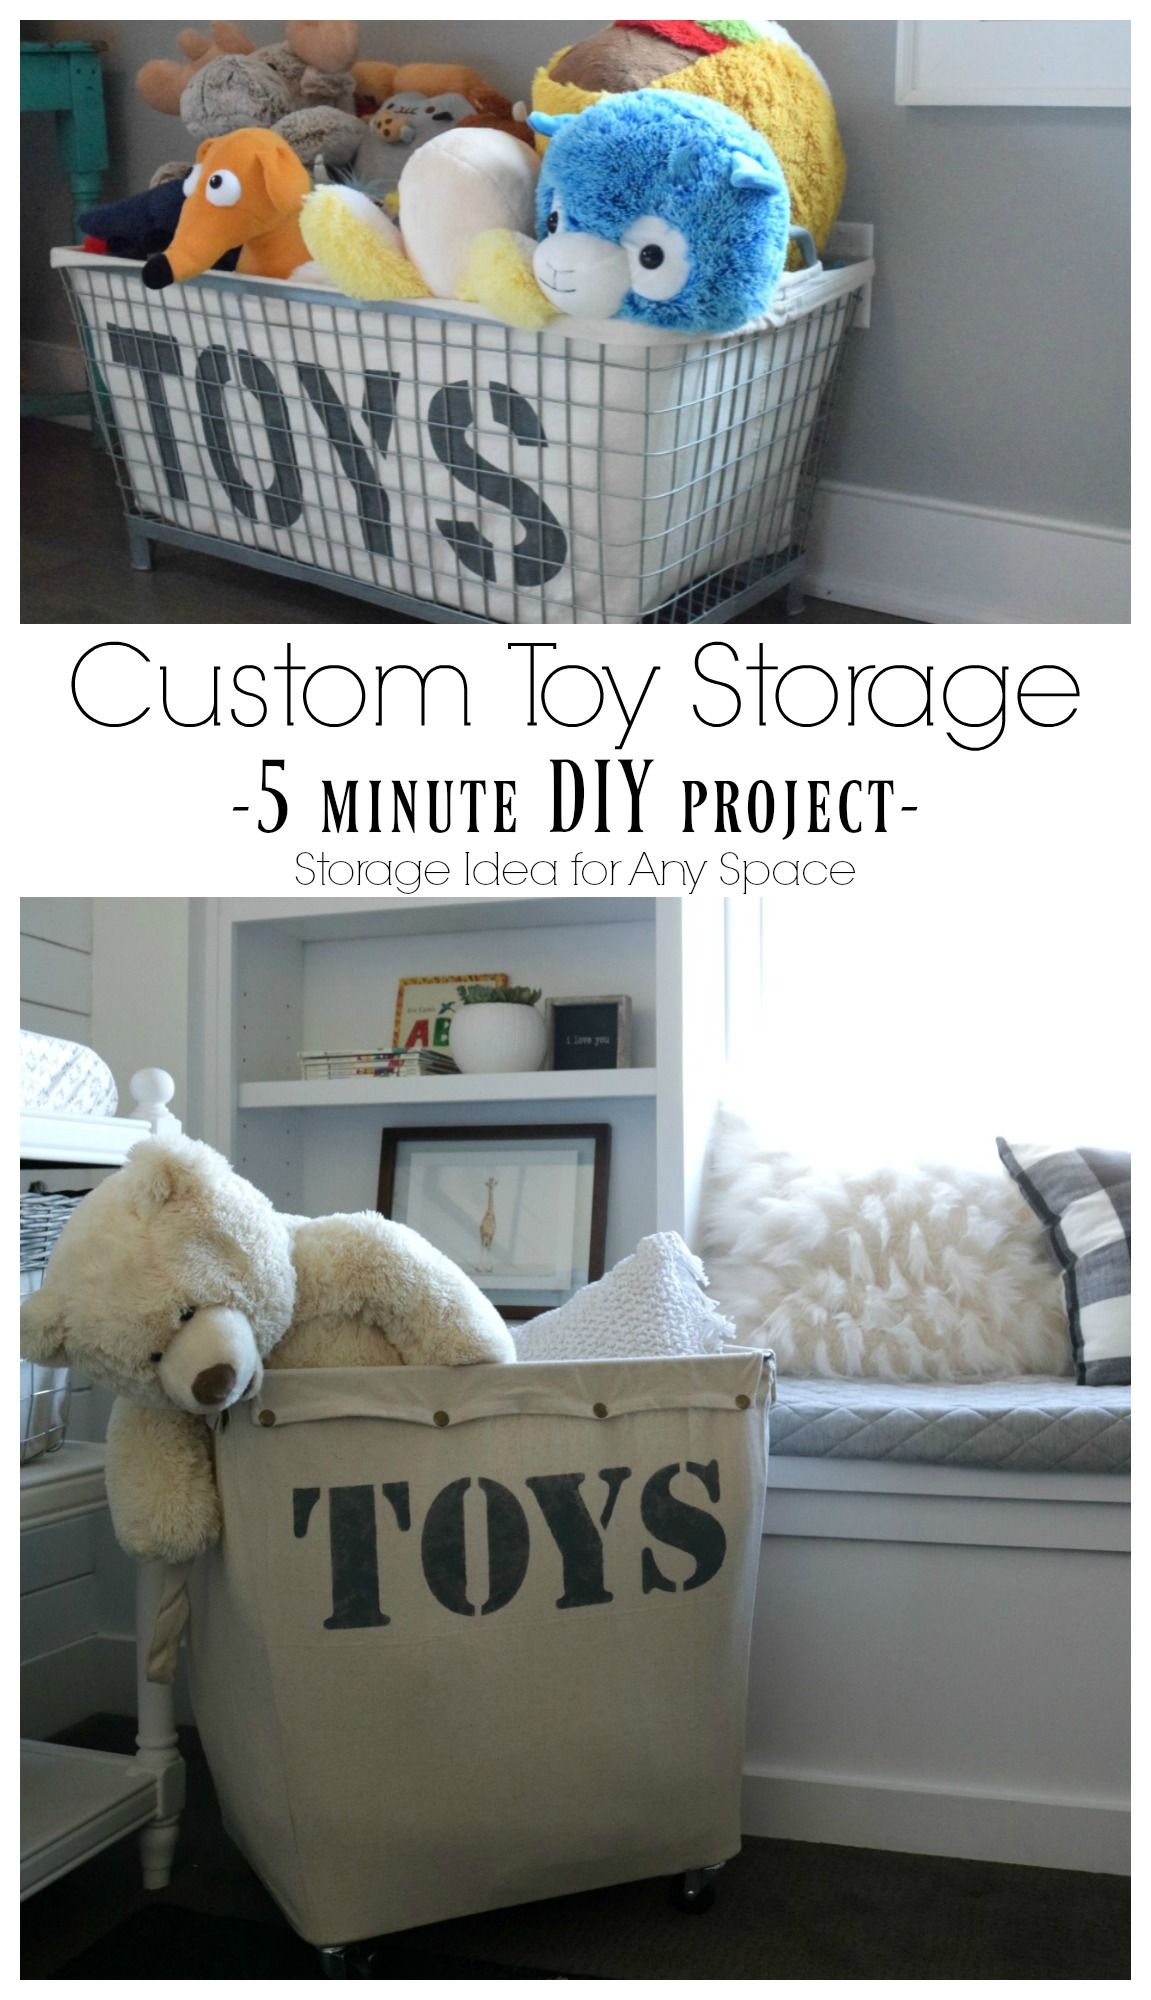 Custom Toy Storage Solution- 5 Minute Project